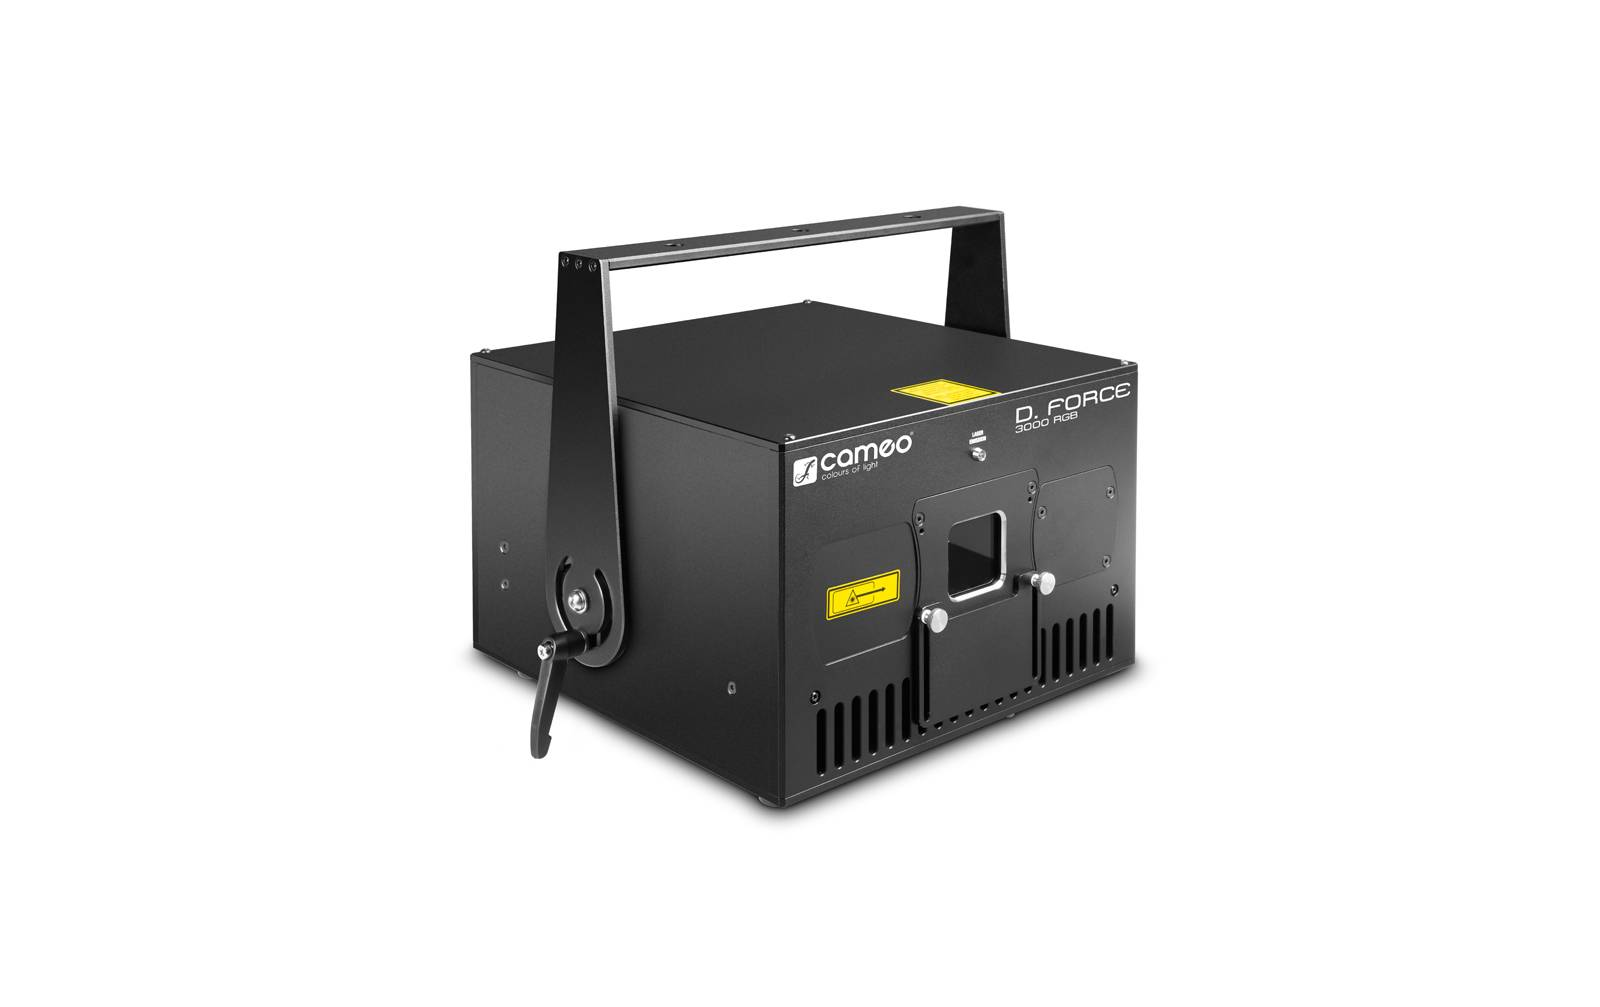 cameo-d-force-3000-rgb-laser, 2465.00 EUR @ music-and-more-store